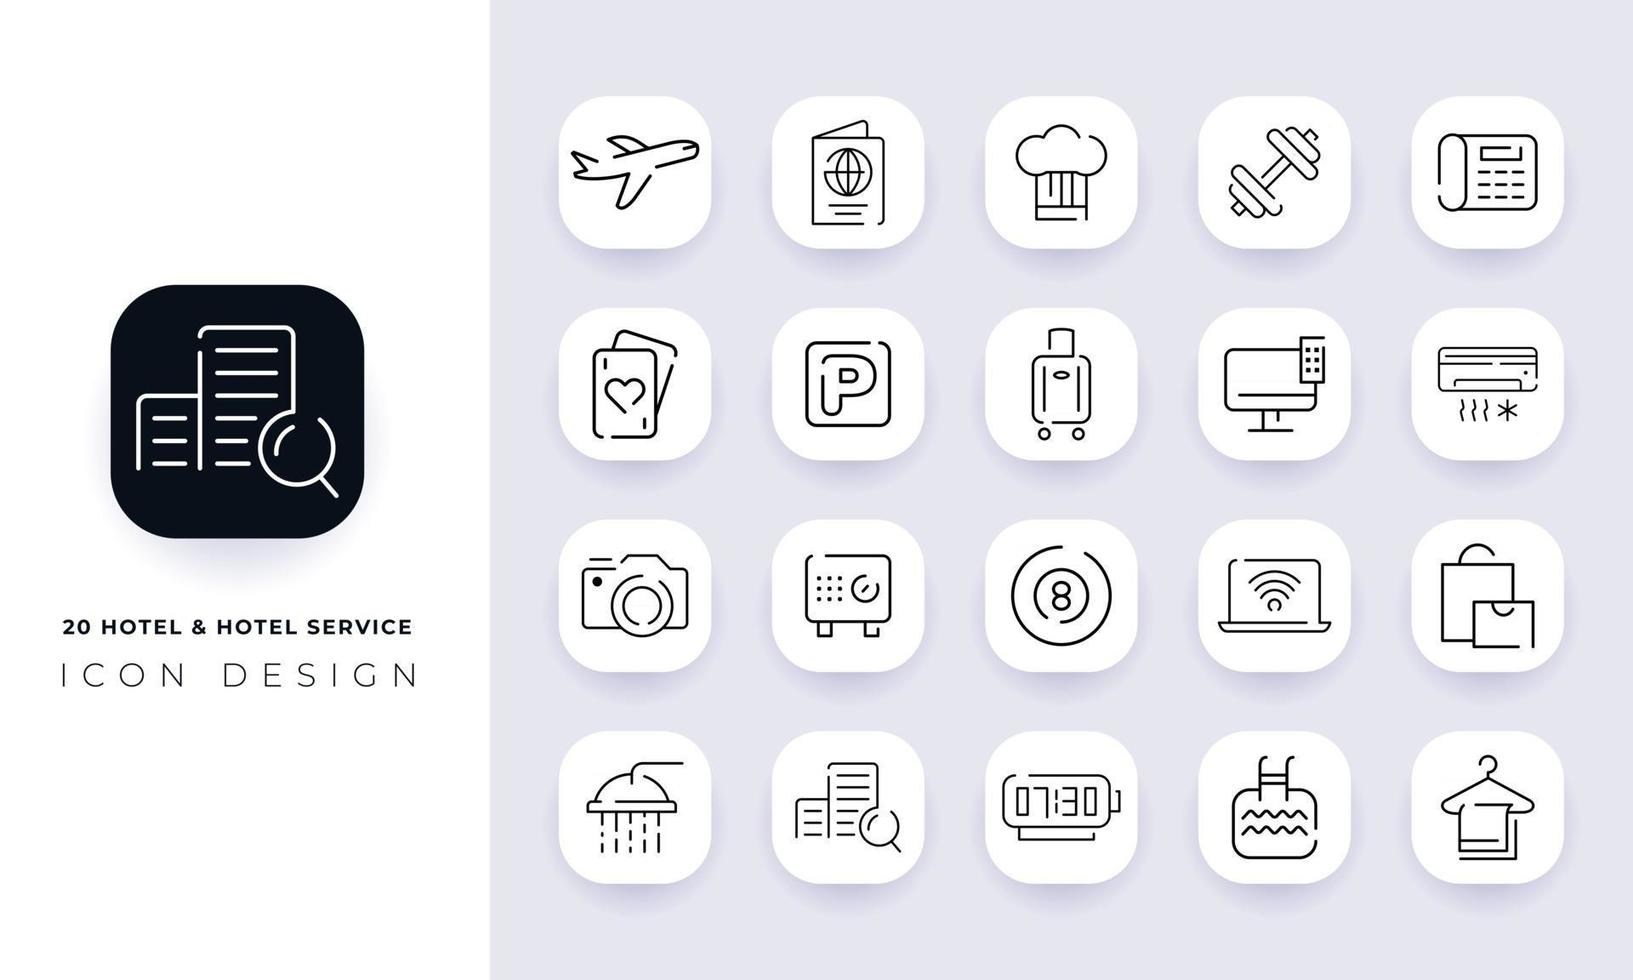 Line art incomplete hotel and hotel service icon pack. vector